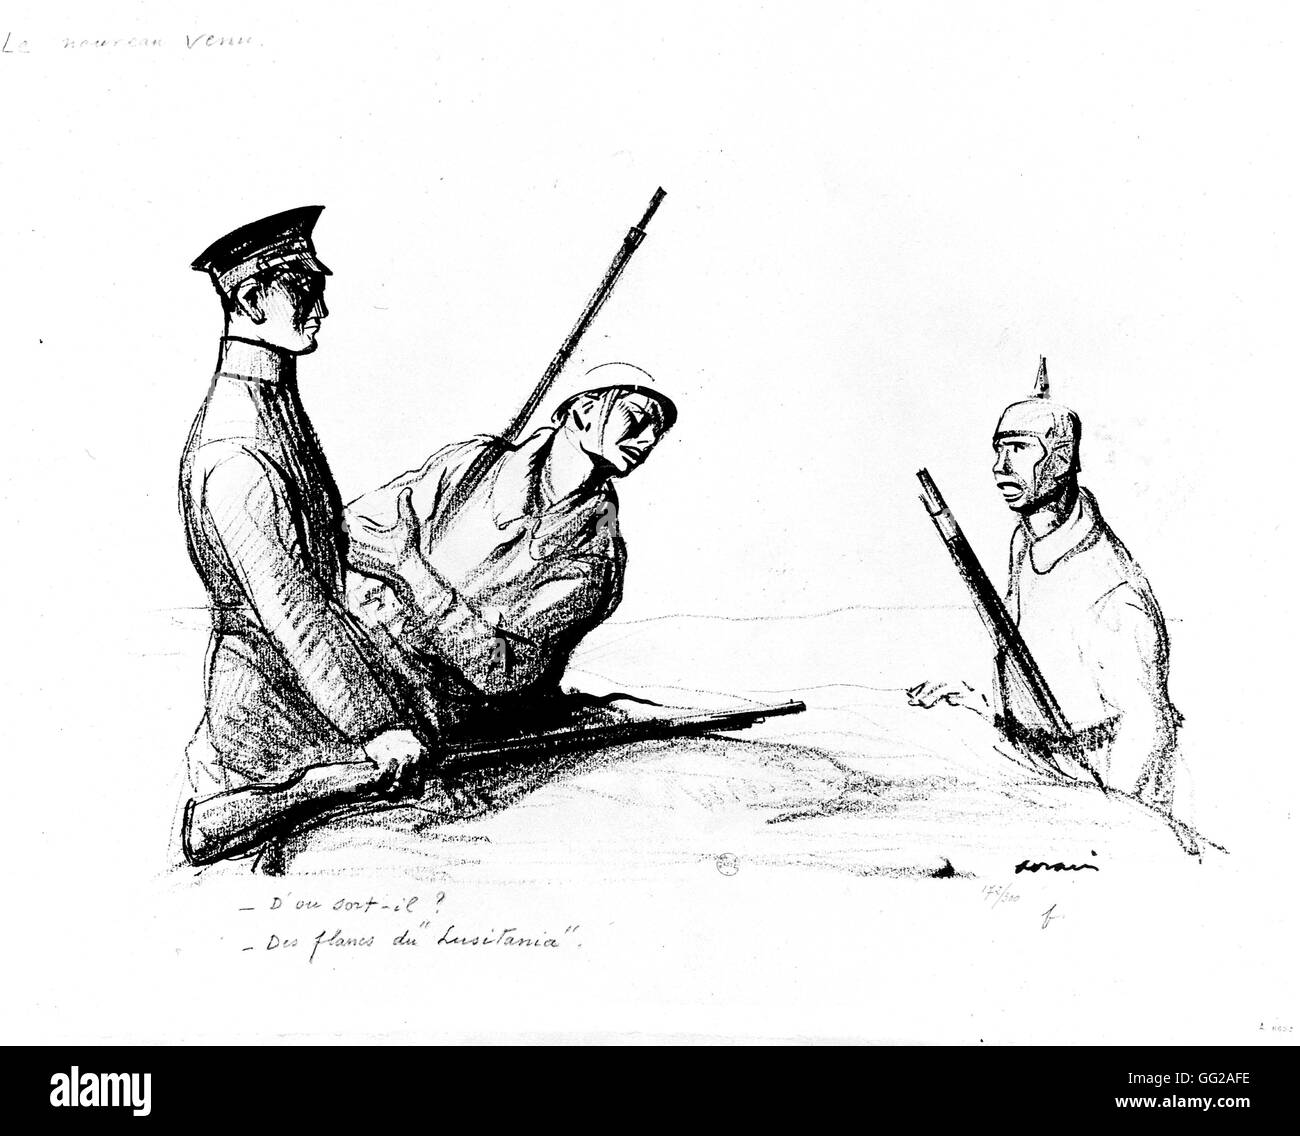 Caricature by Jean-Louis Forain (1852-1931). 'The newcomer'. (concerning the Lusitania) July 14 1917 France - Stock Image